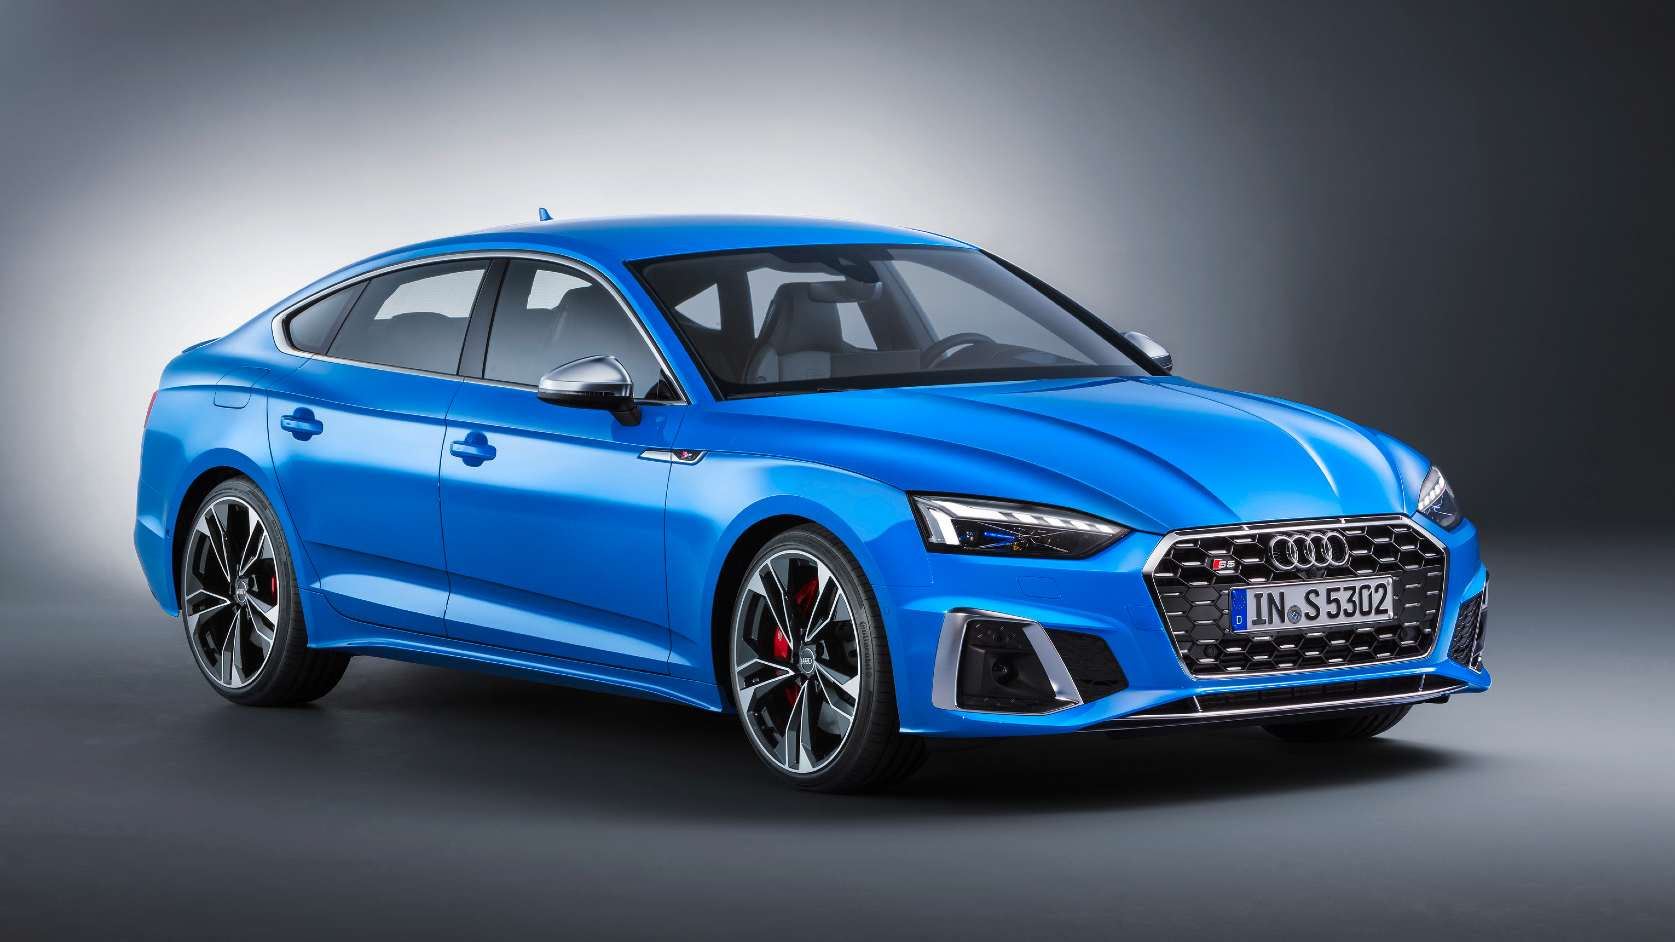 The 2021 Audi S5 Sportback has a claimed 0-100 kph time of 4.8 seconds. Image: Audi